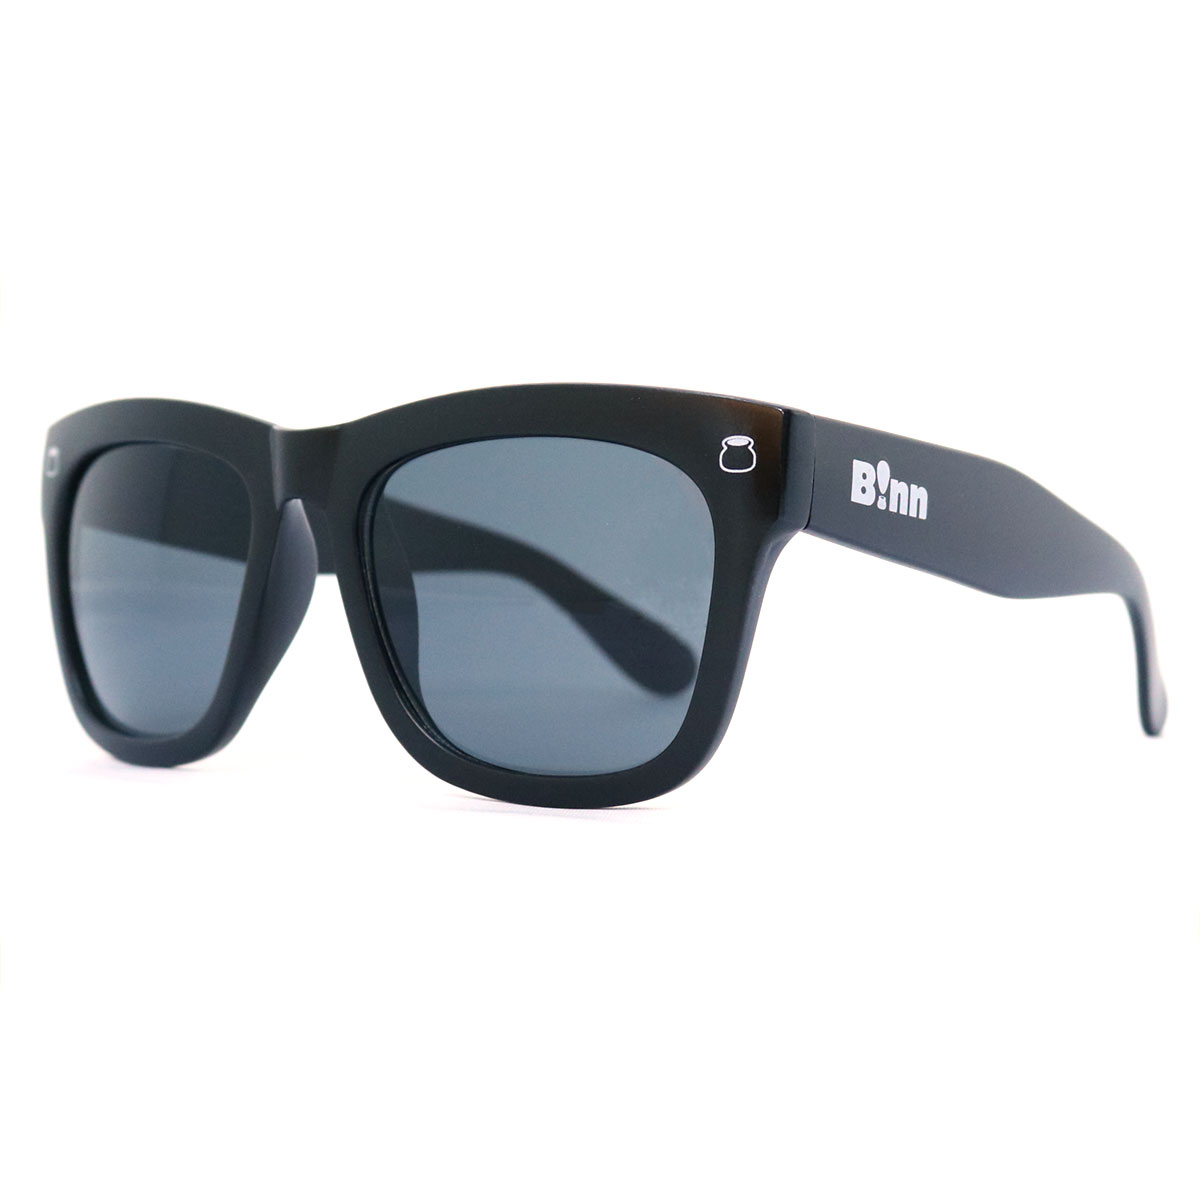 WELLINGTON 2 SUN GLASS BK